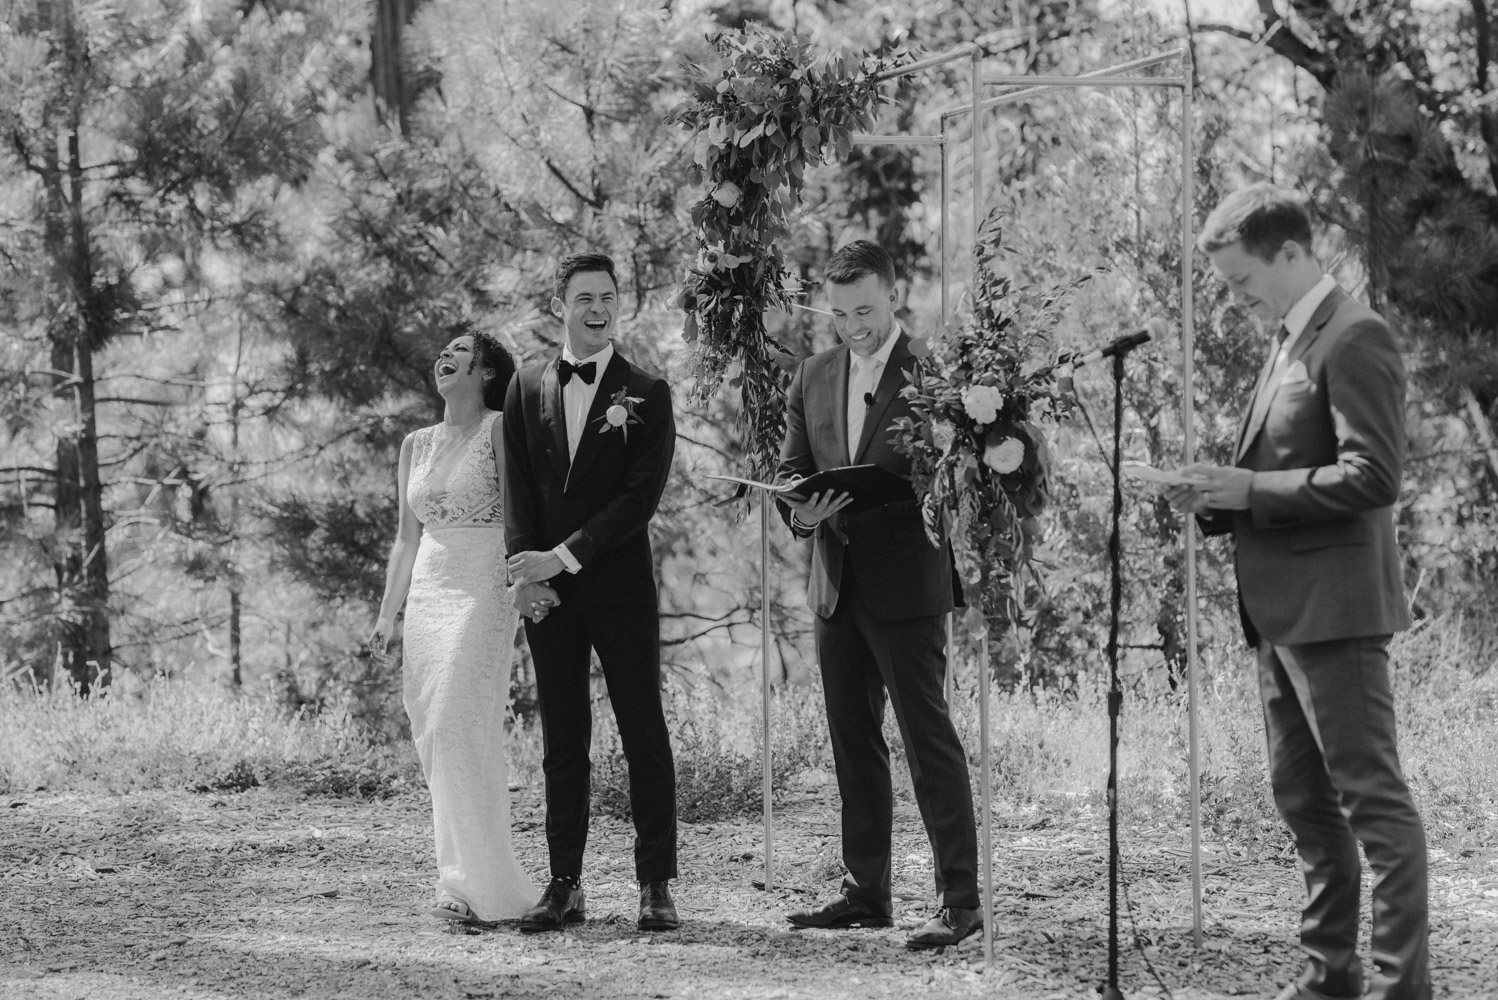 Rush Creek Lodge Wedding, photo of couple at the ceremony, California Love being read to them